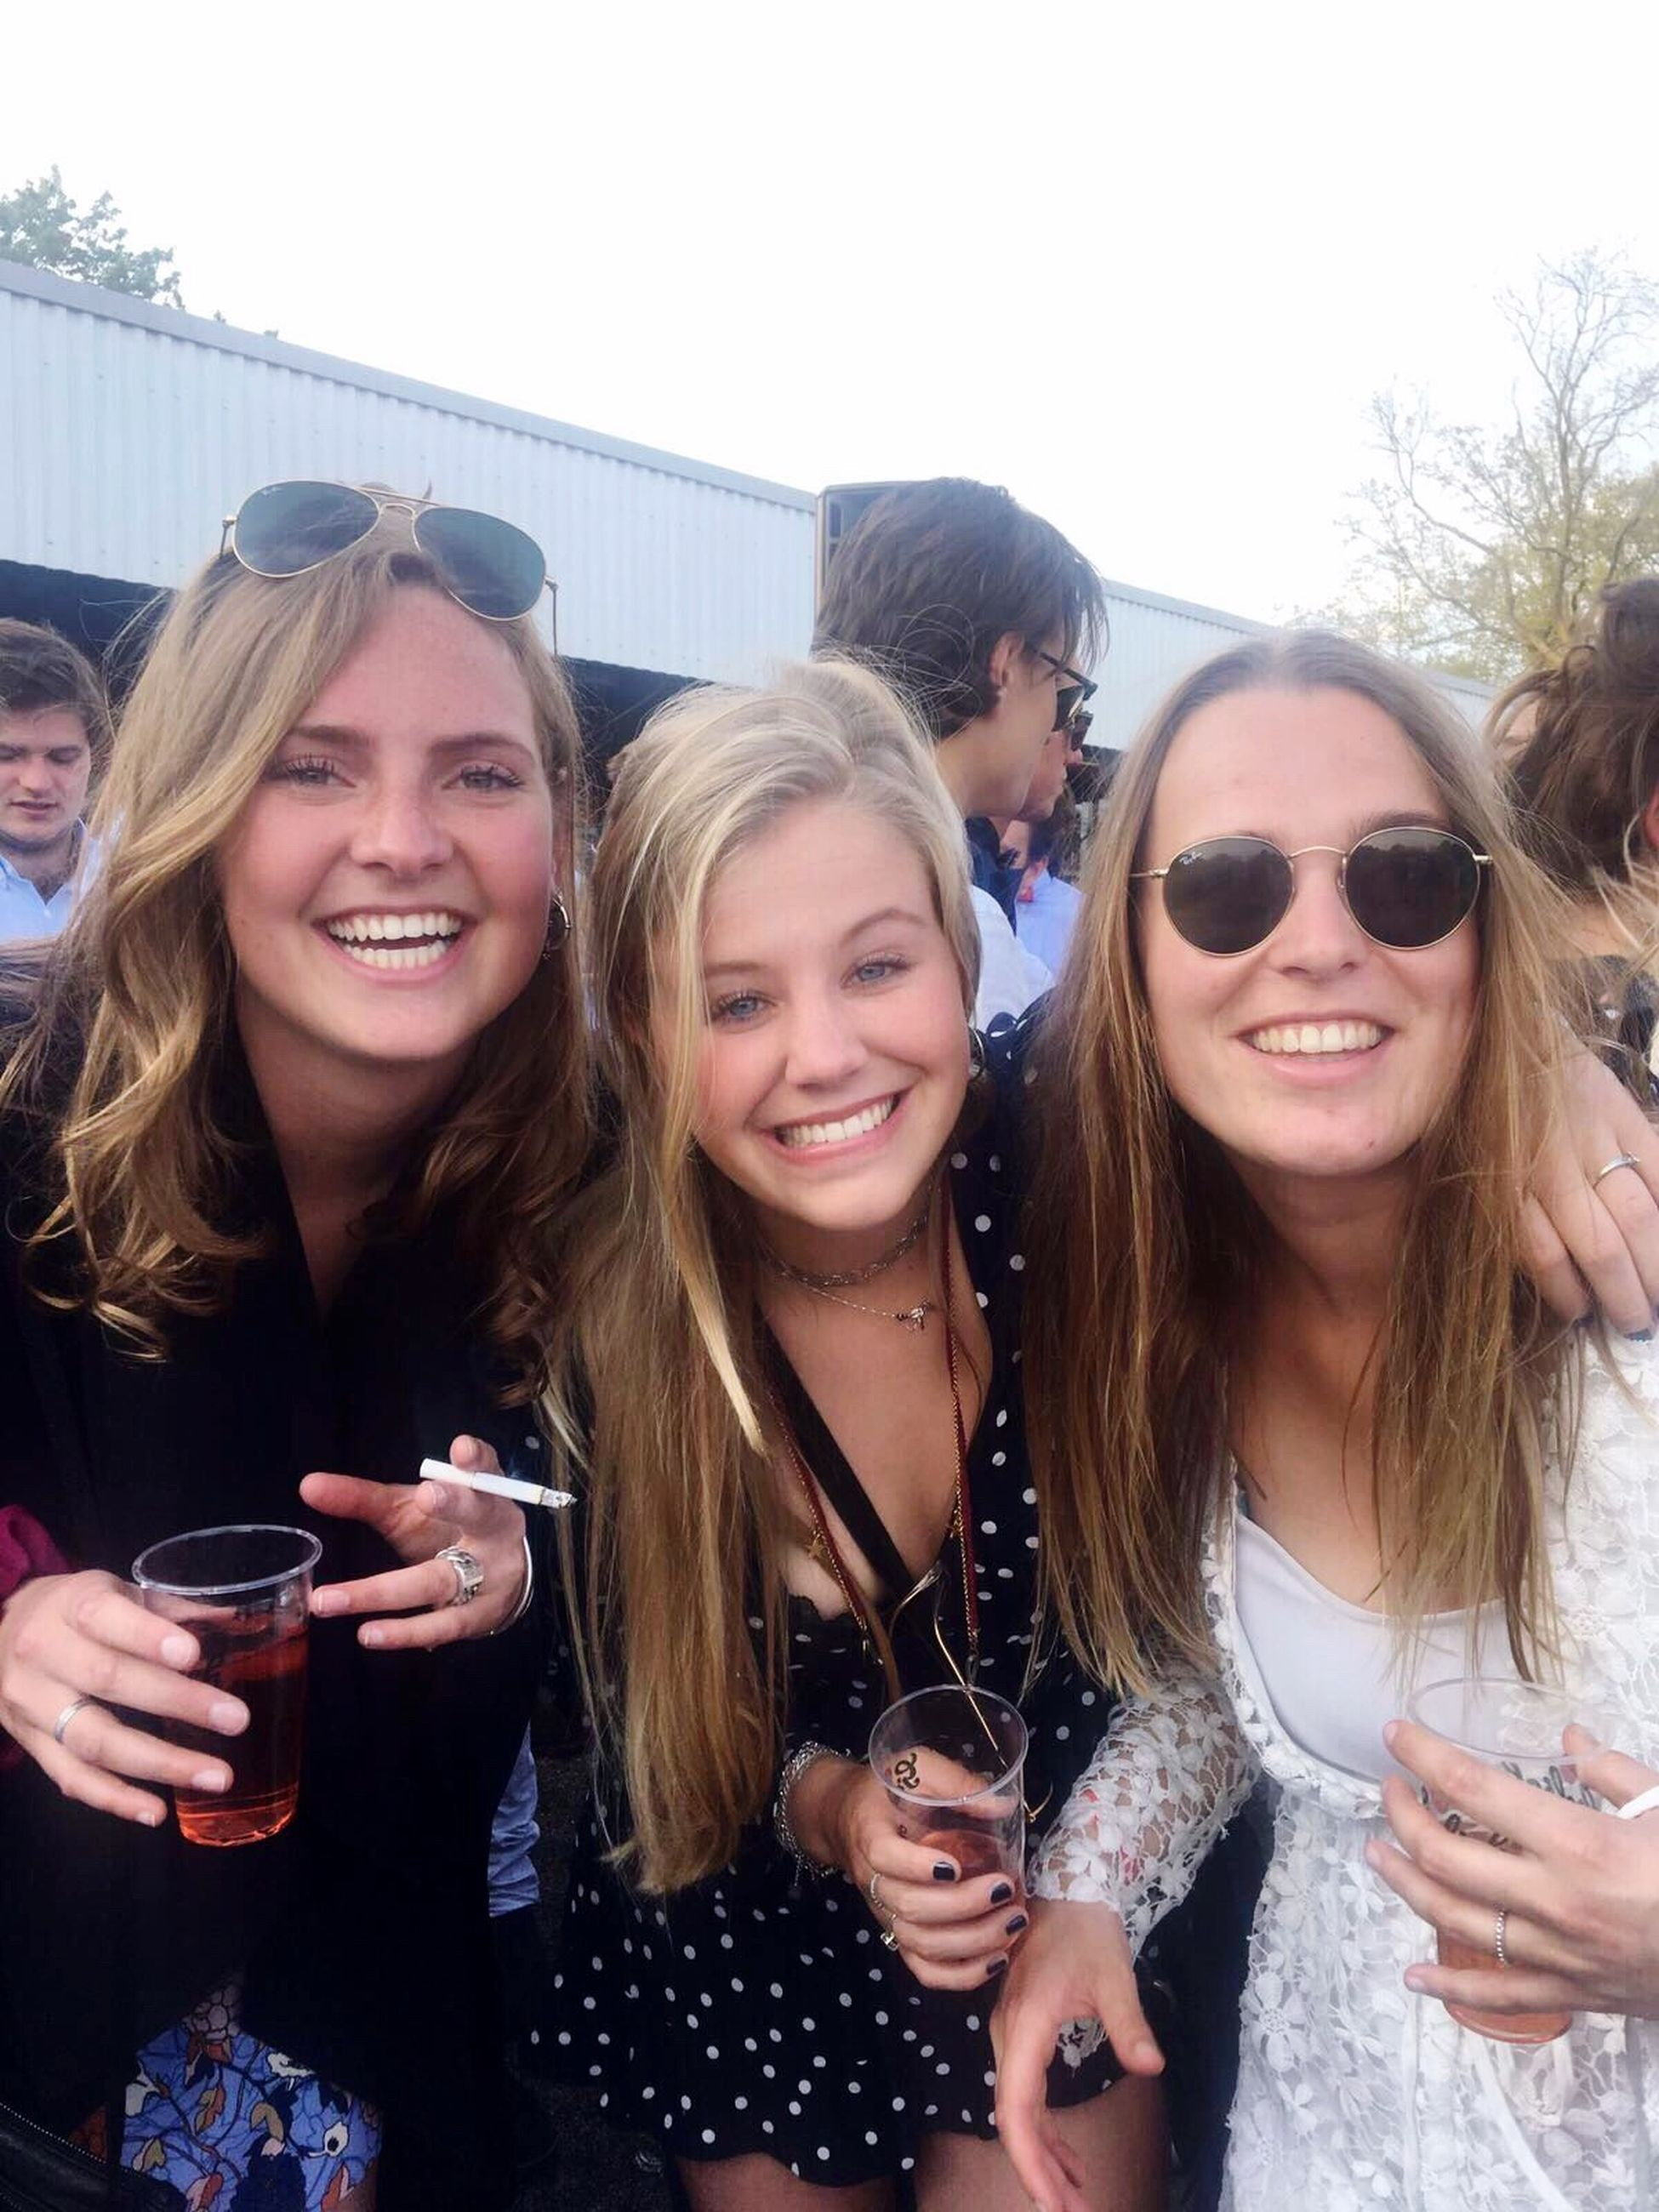 drinking, friendship, smiling, drink, real people, togetherness, food and drink, leisure activity, looking at camera, portrait, holding, alcohol, happiness, day, outdoors, young adult, young women